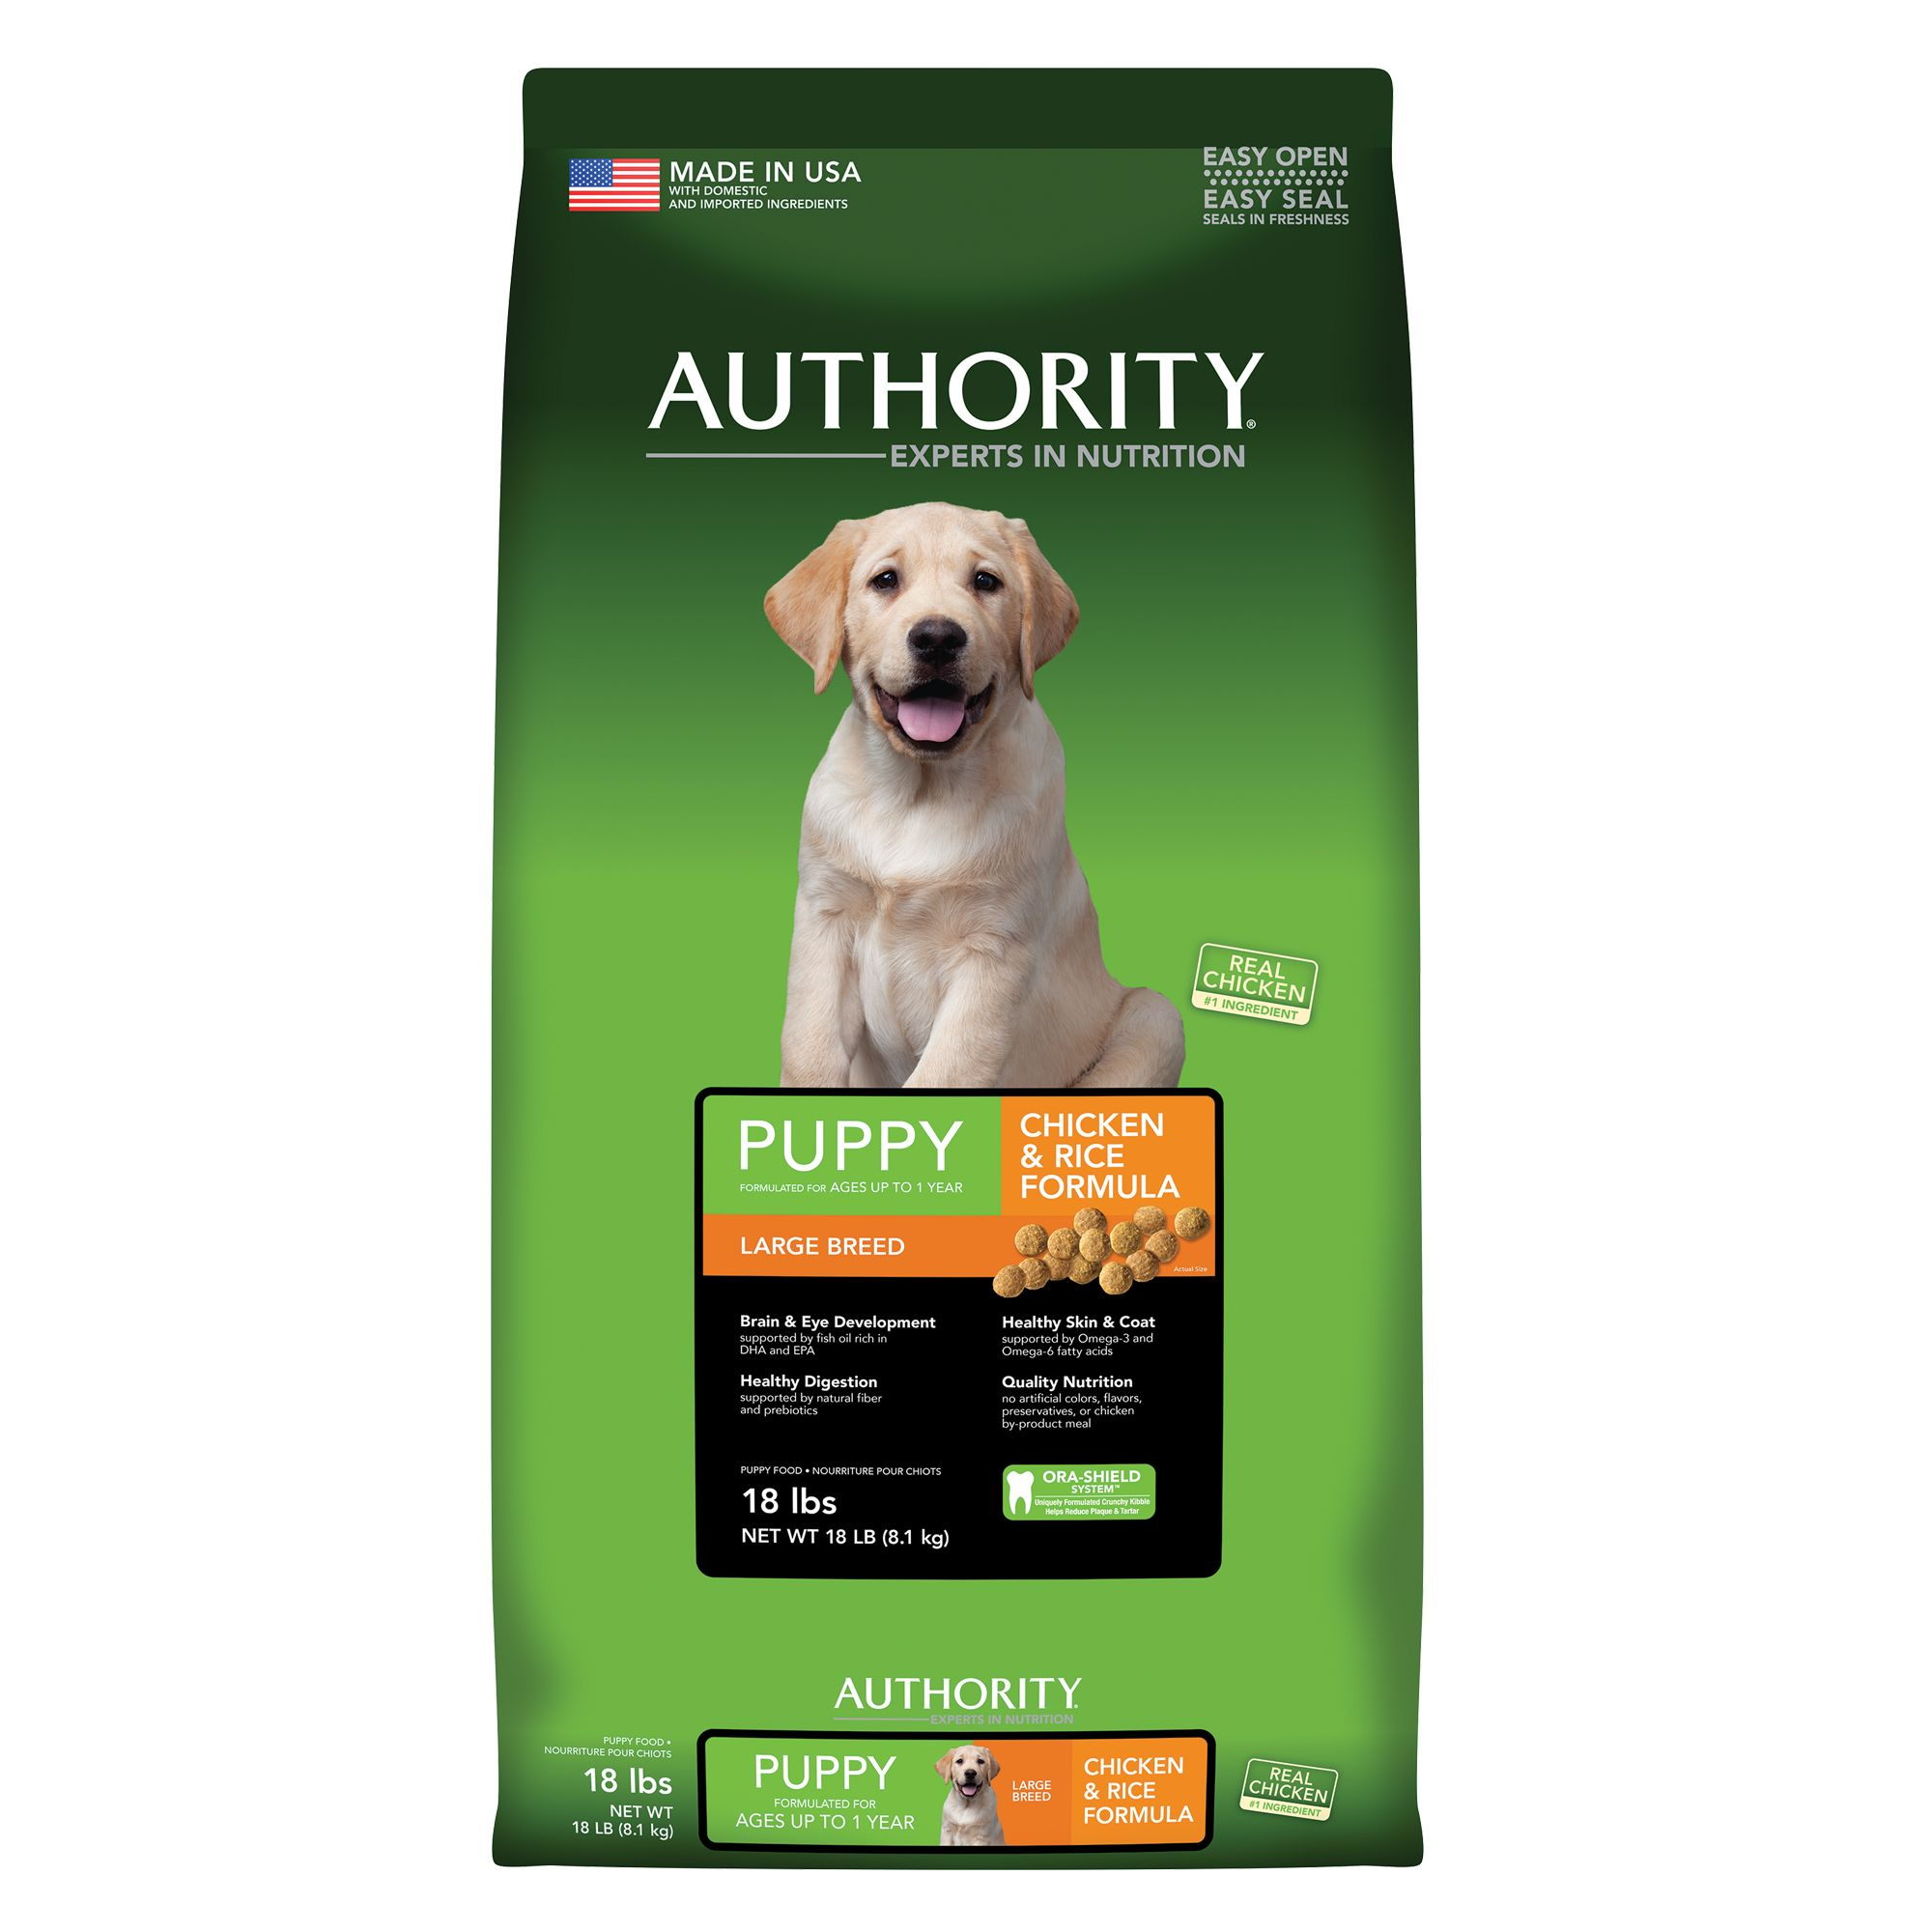 737257535534 UPC - Authority Large Breed Puppy Food Chicken, 18lb